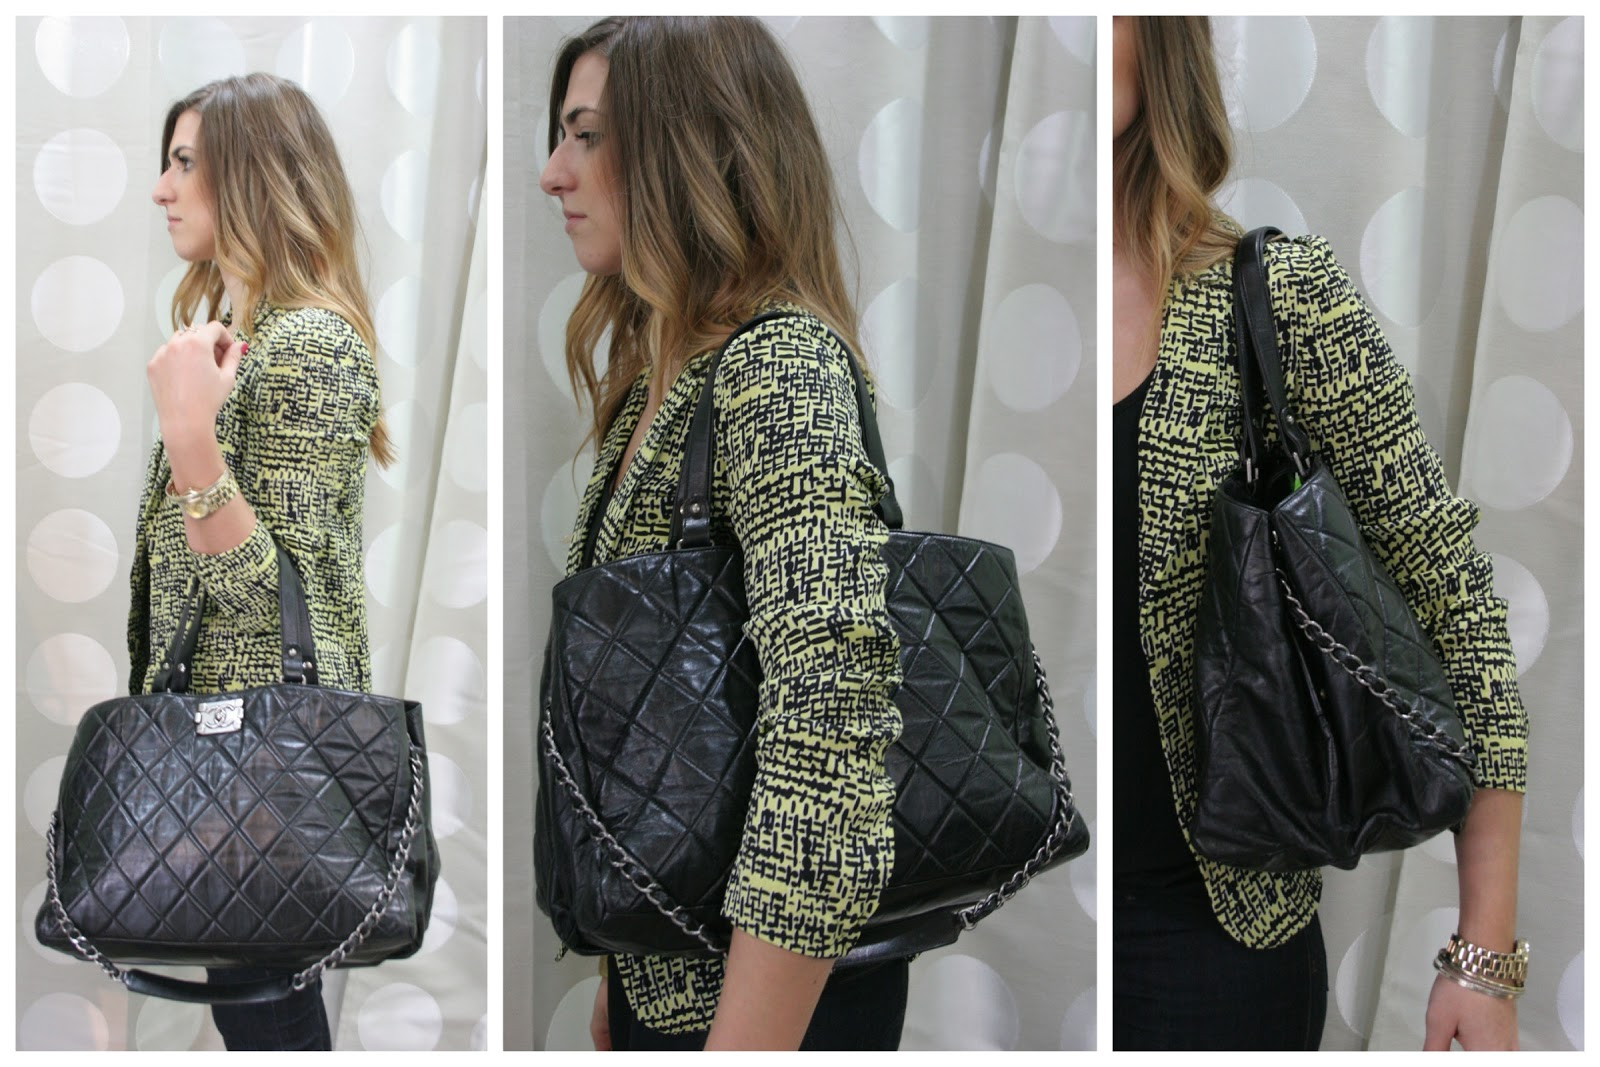 Bags on Body II: Fab Chanel! | Recycled Chic Consignment : quilted boy tote chanel - Adamdwight.com